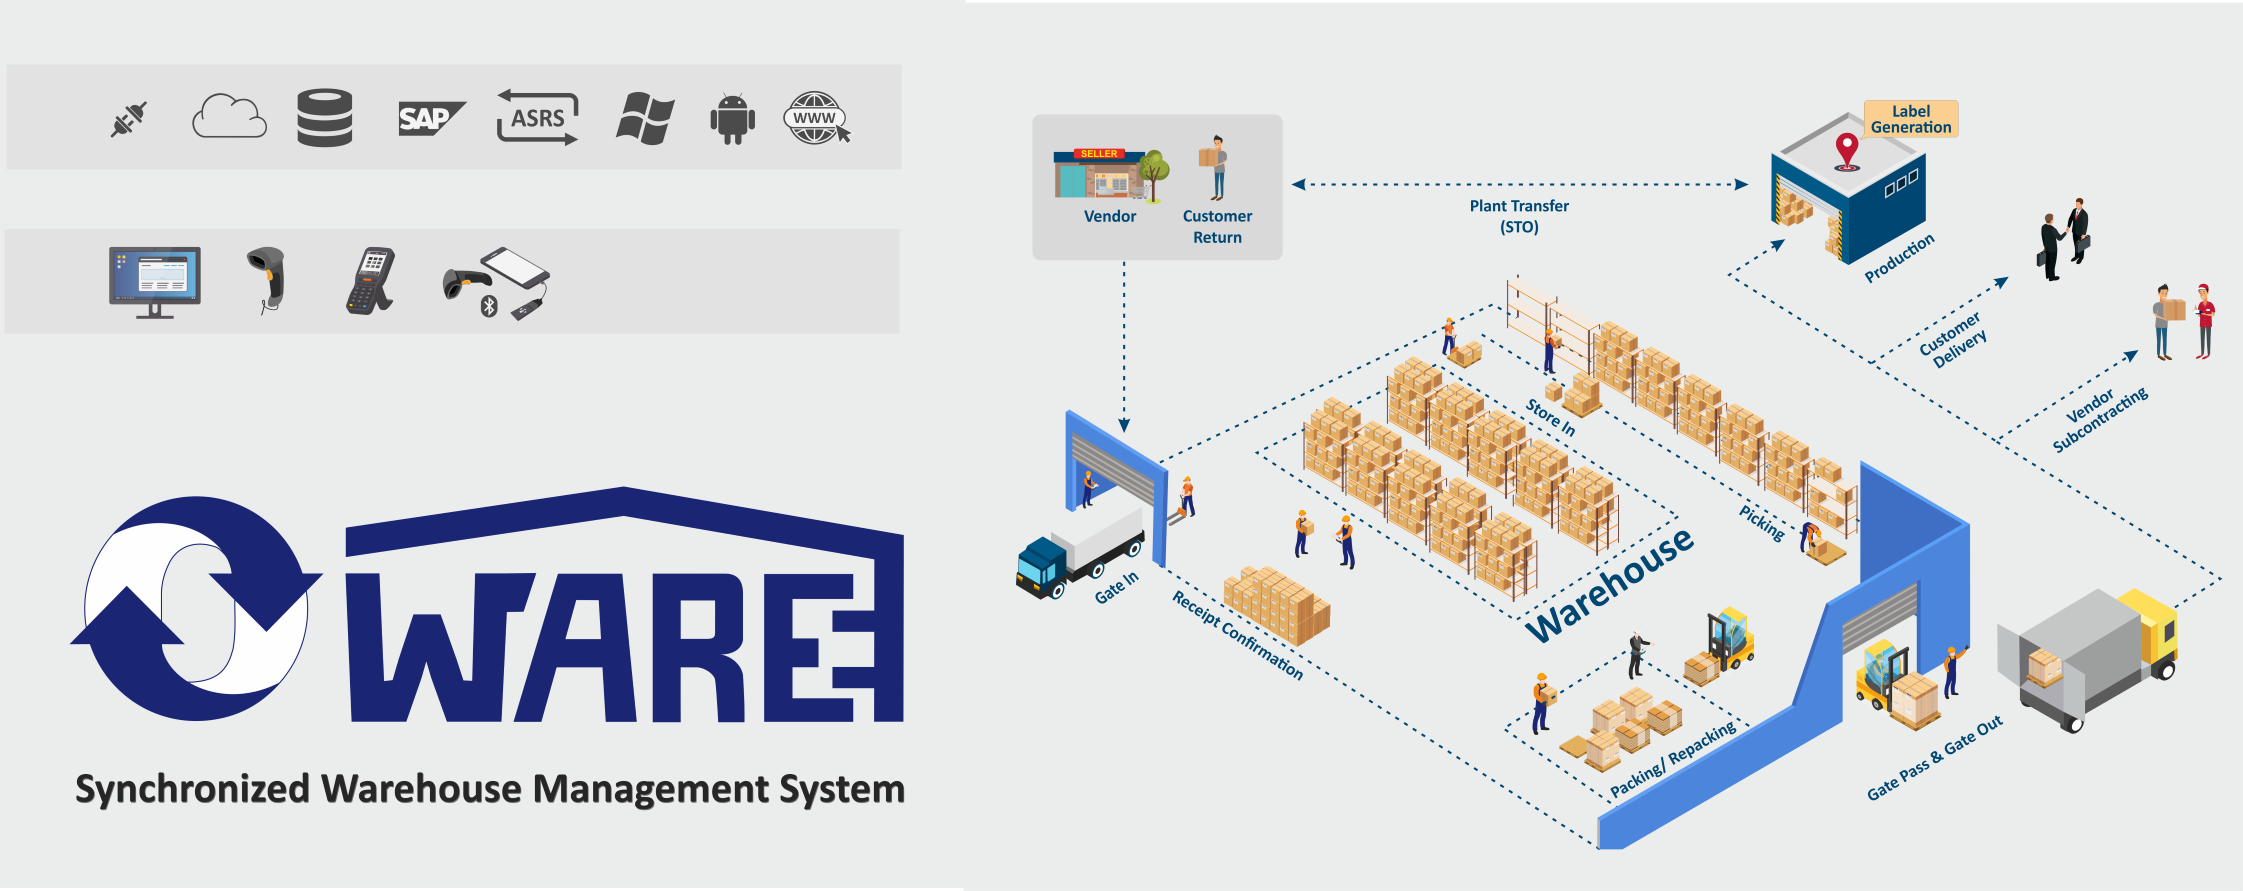 OWare-Warehouse Management System